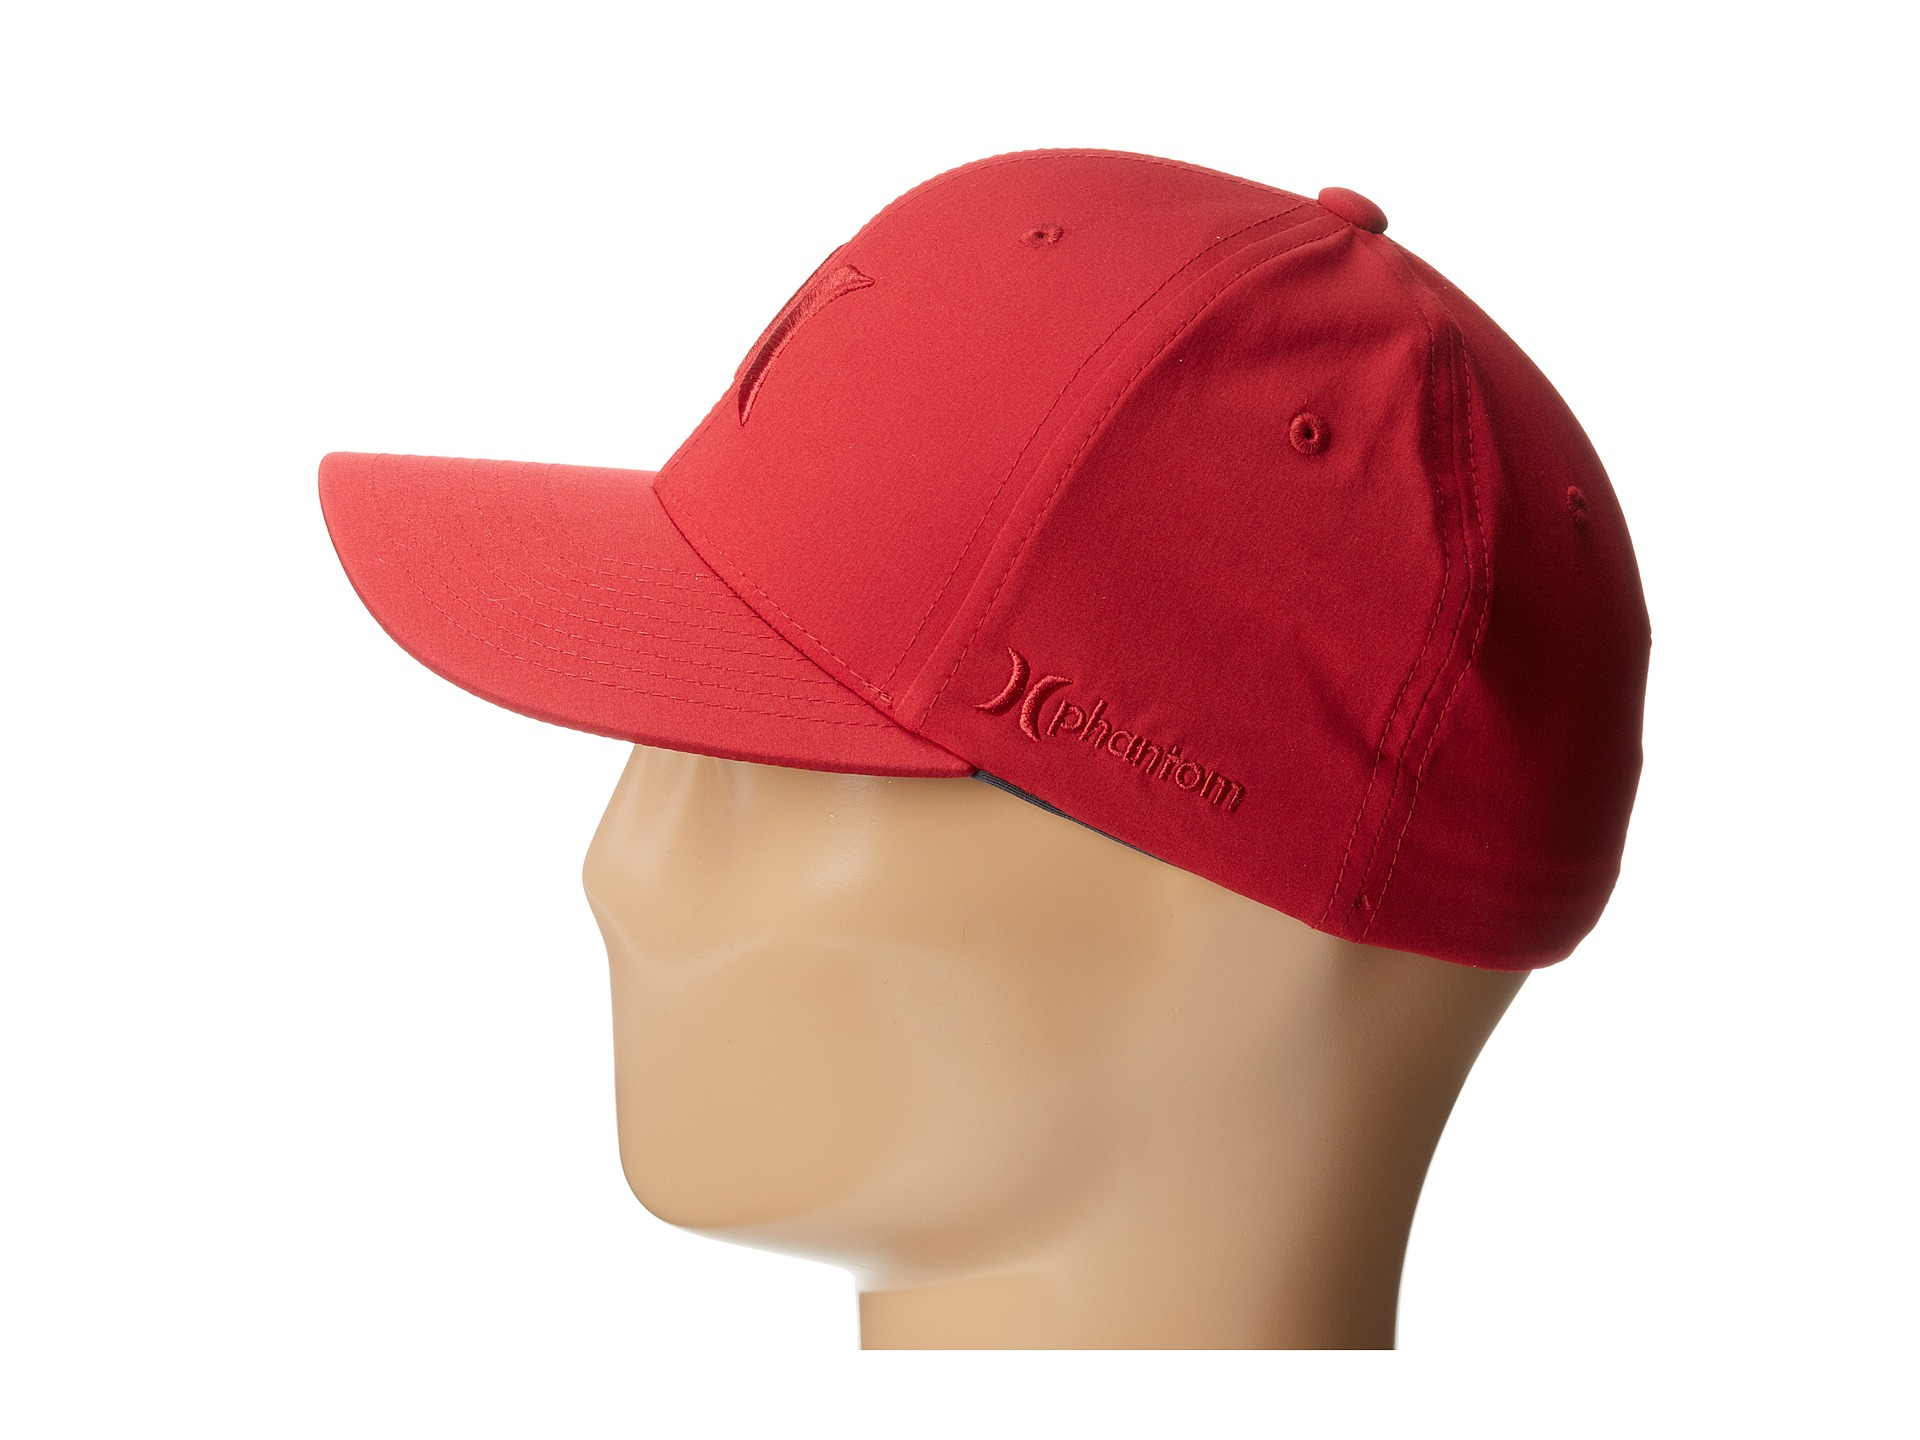 reputable site 616b6 3507a coupon for hurley dri fit heather flex cap 77ca3 fb6a5  where to buy lyst hurley  phantom one only flexfit permacurve hat in red for men 007ac